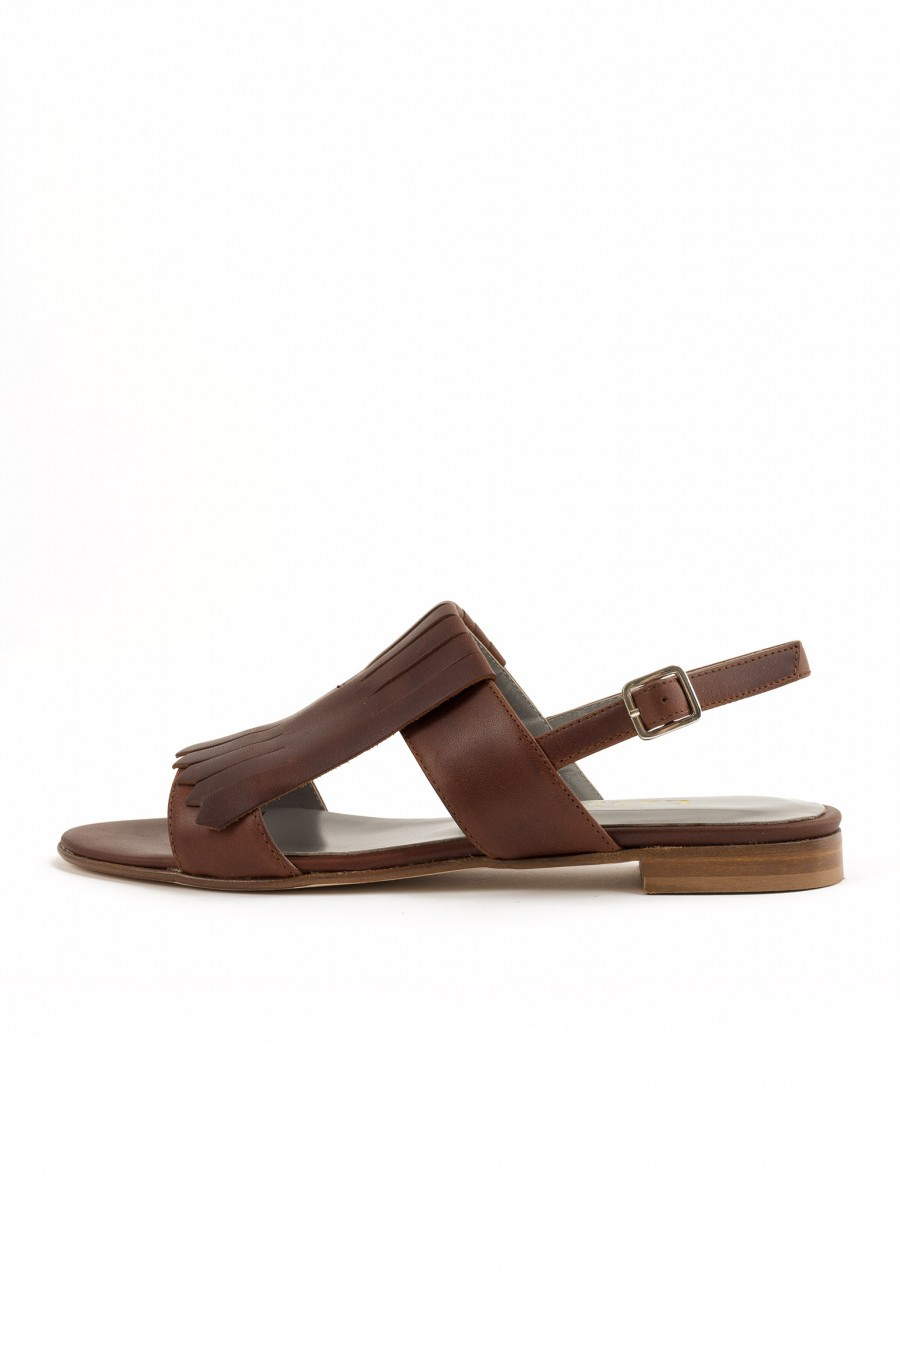 Brownsandal with fringes